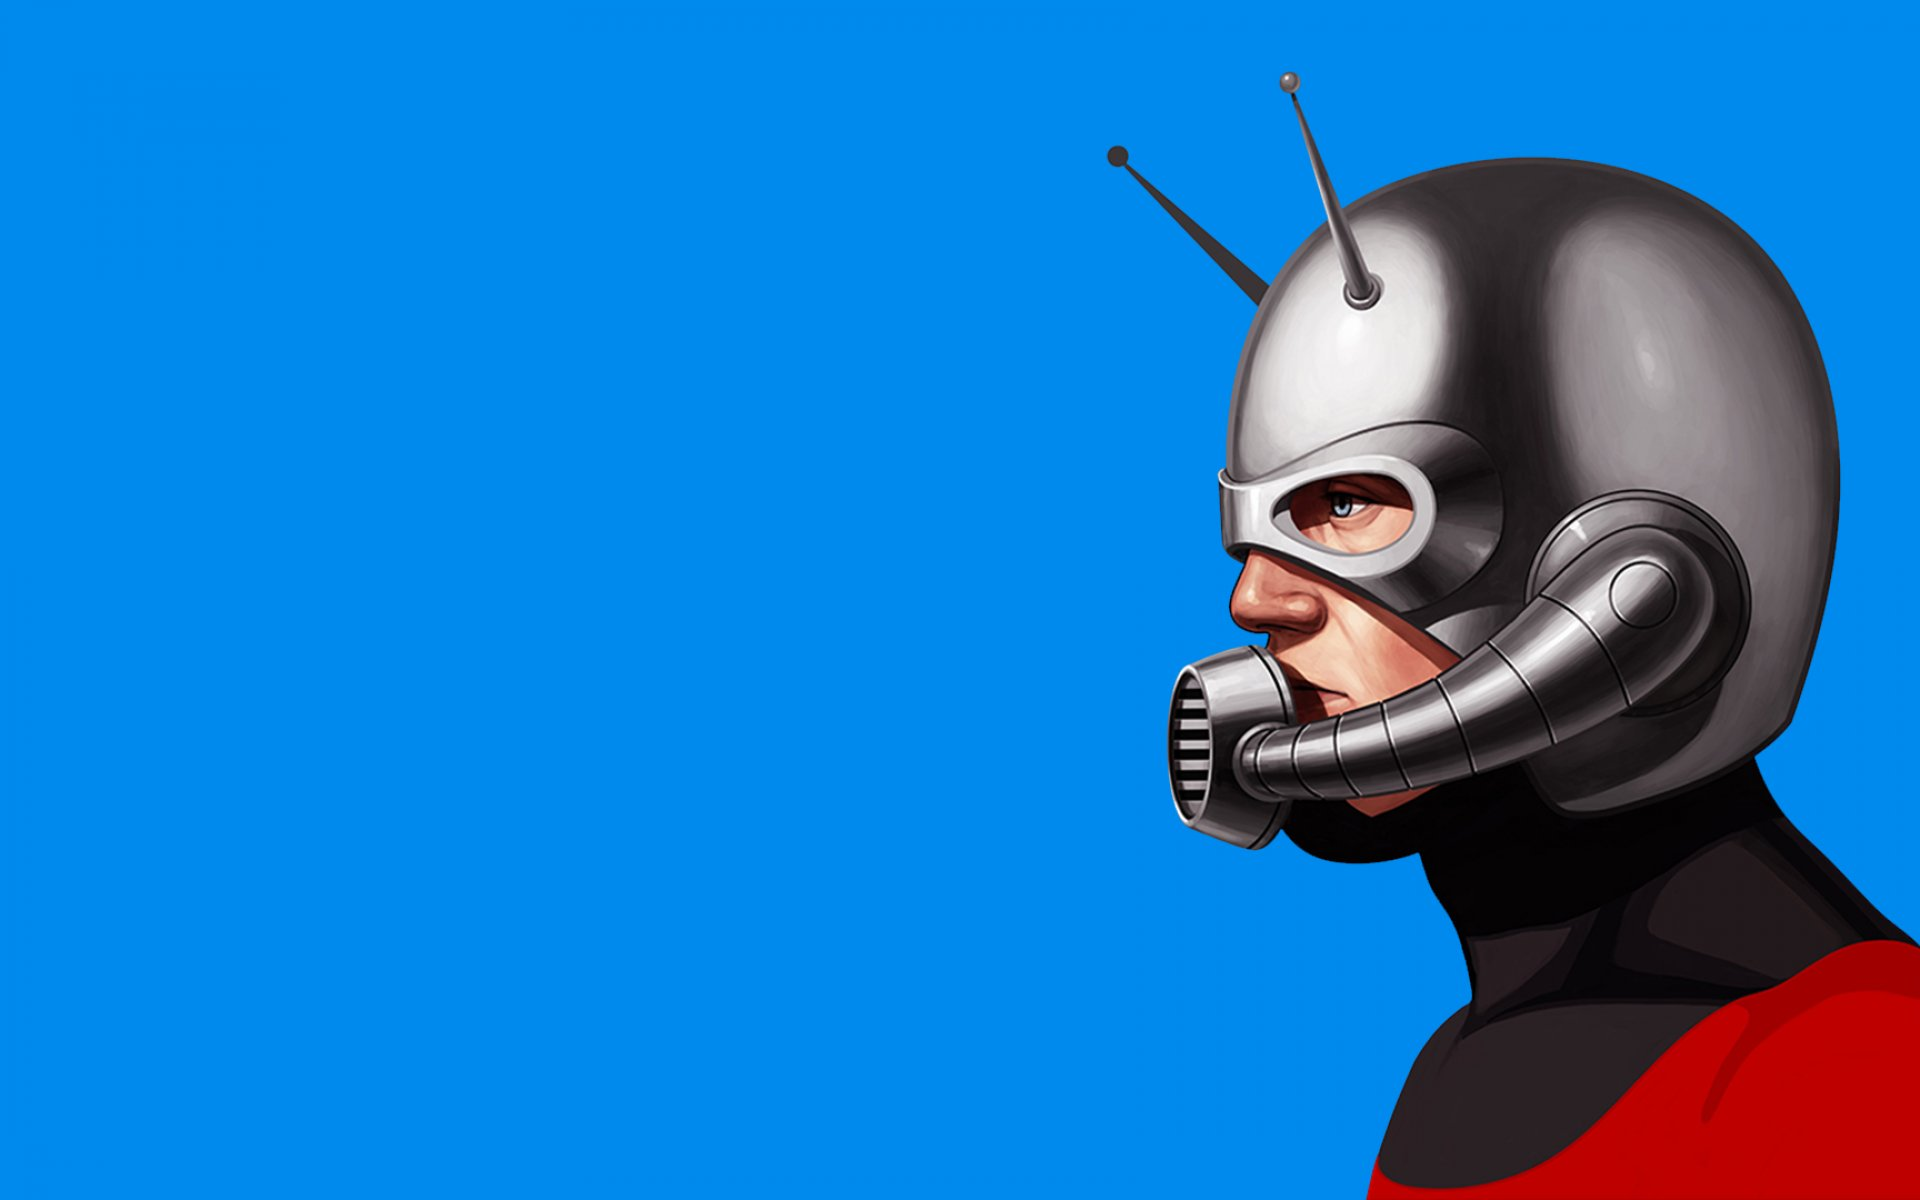 Ant Man Wallpaper 41